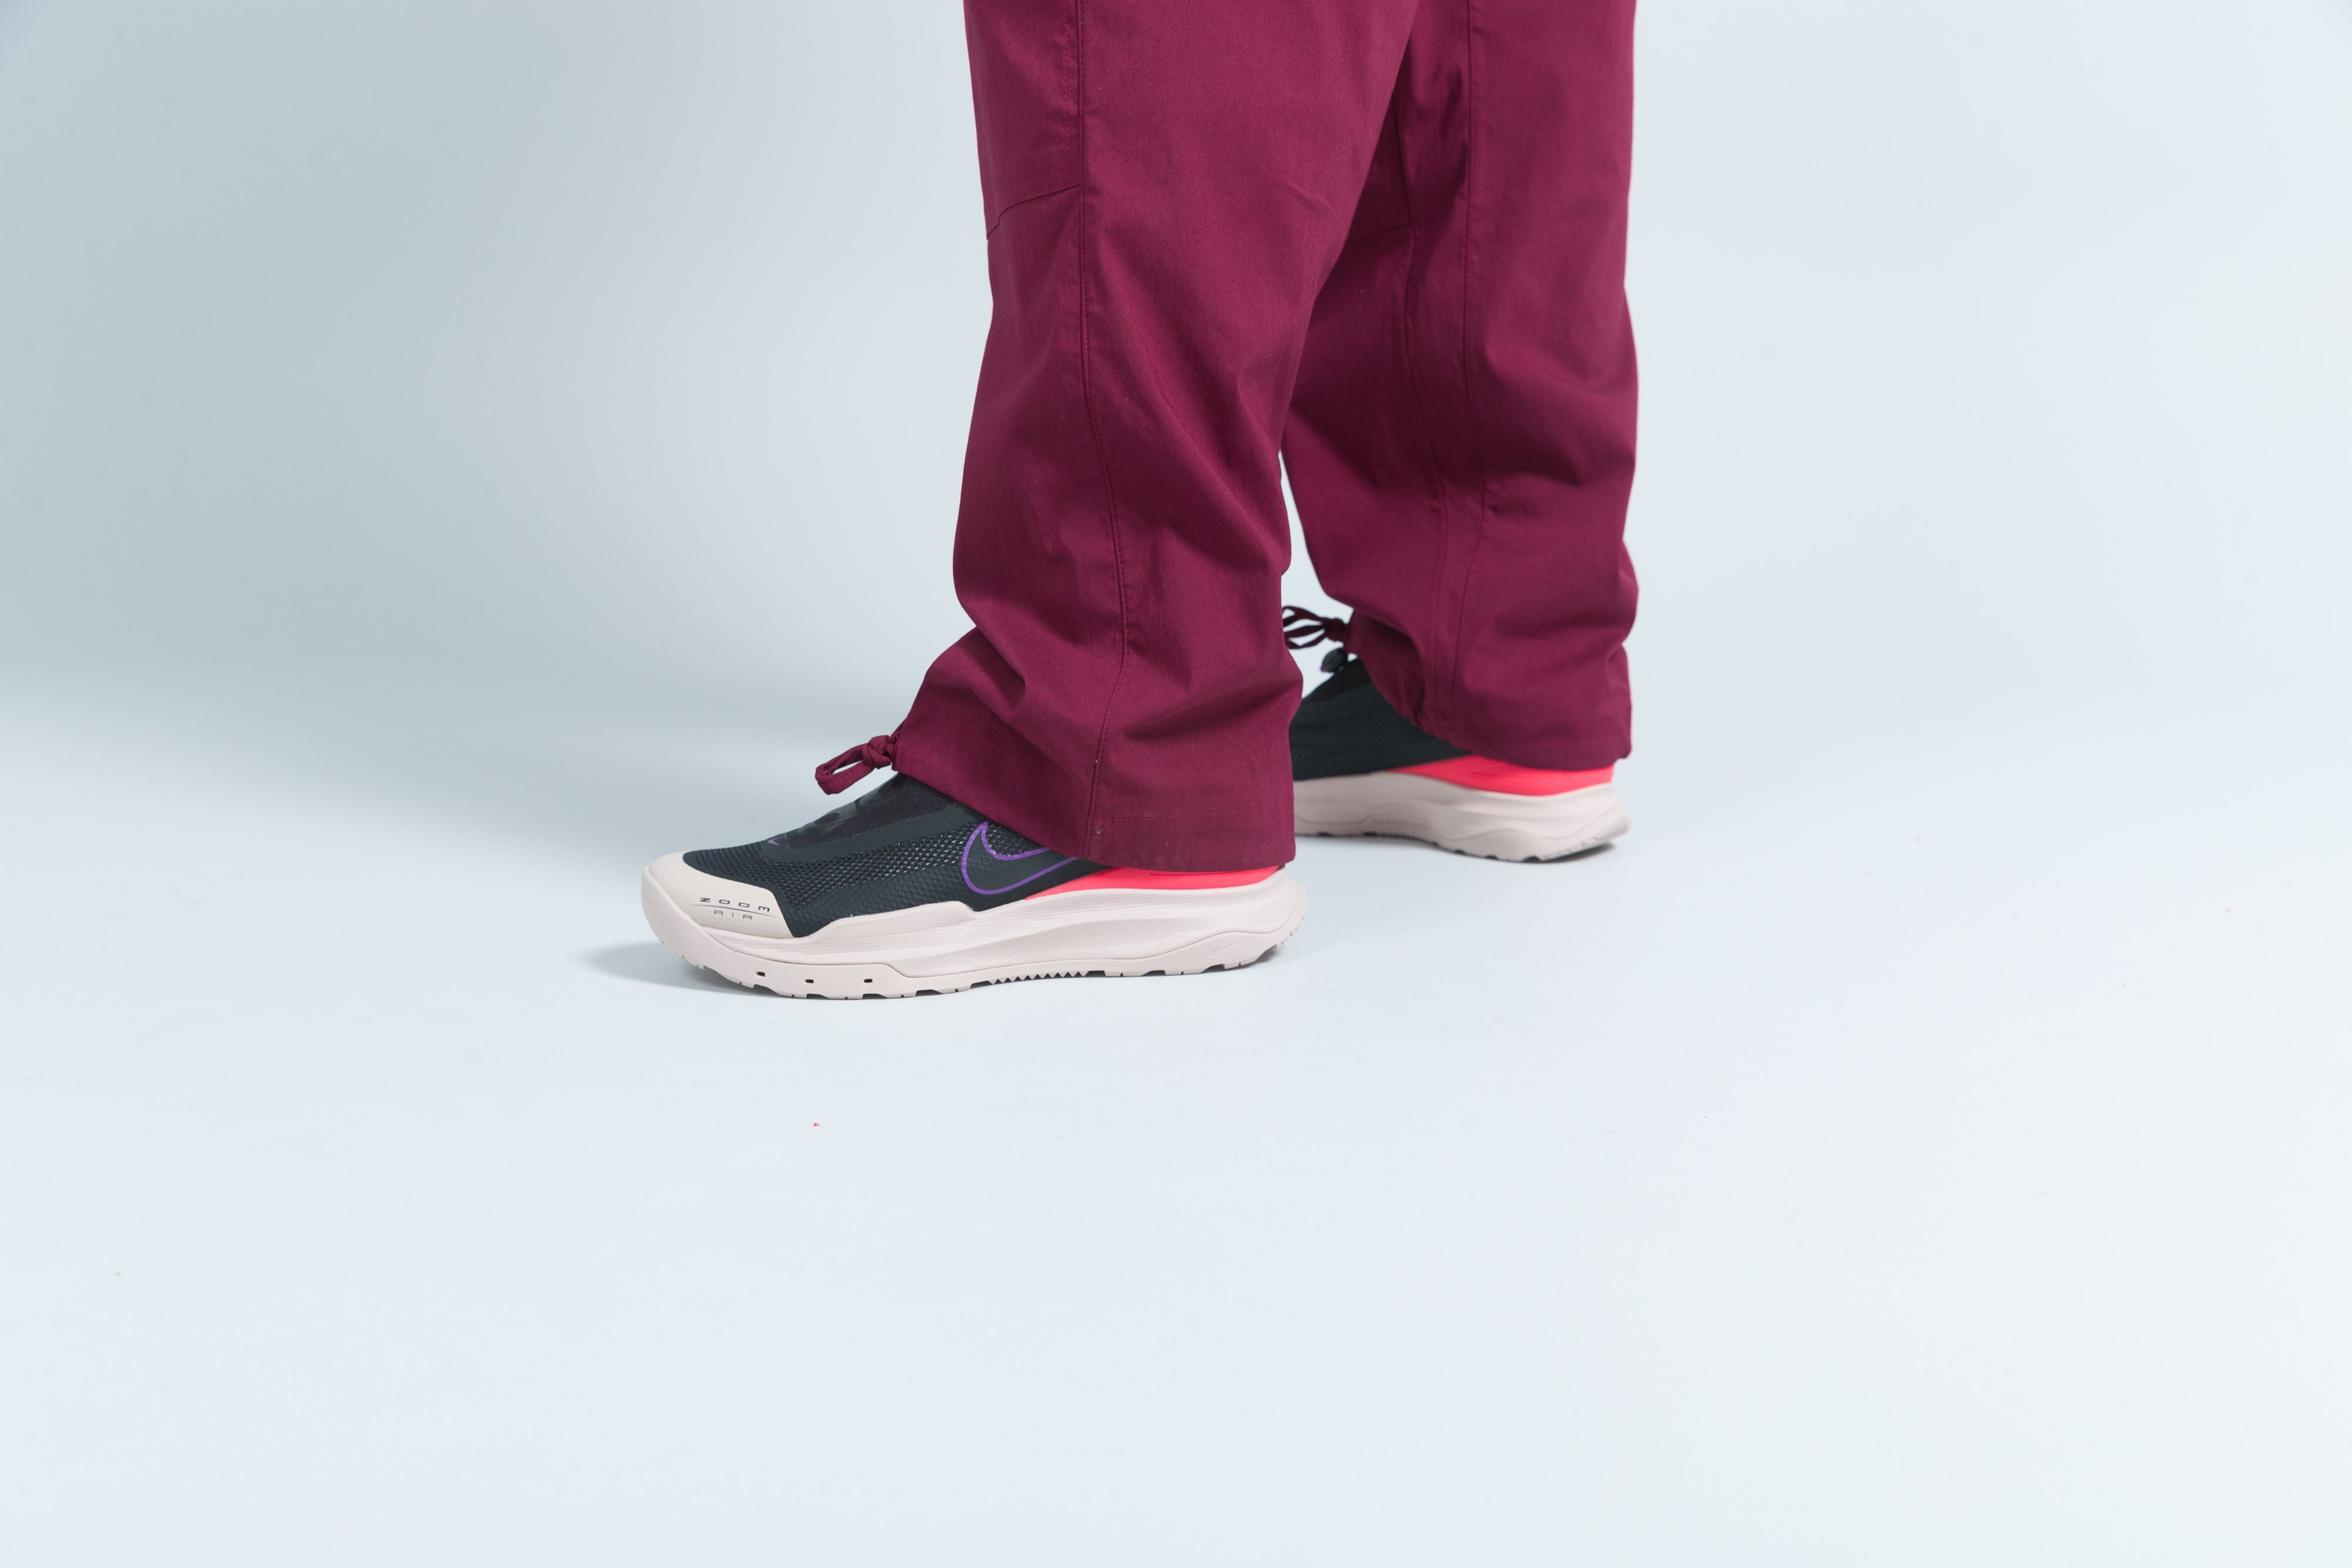 Nike ACG All Conditions Gear FW20